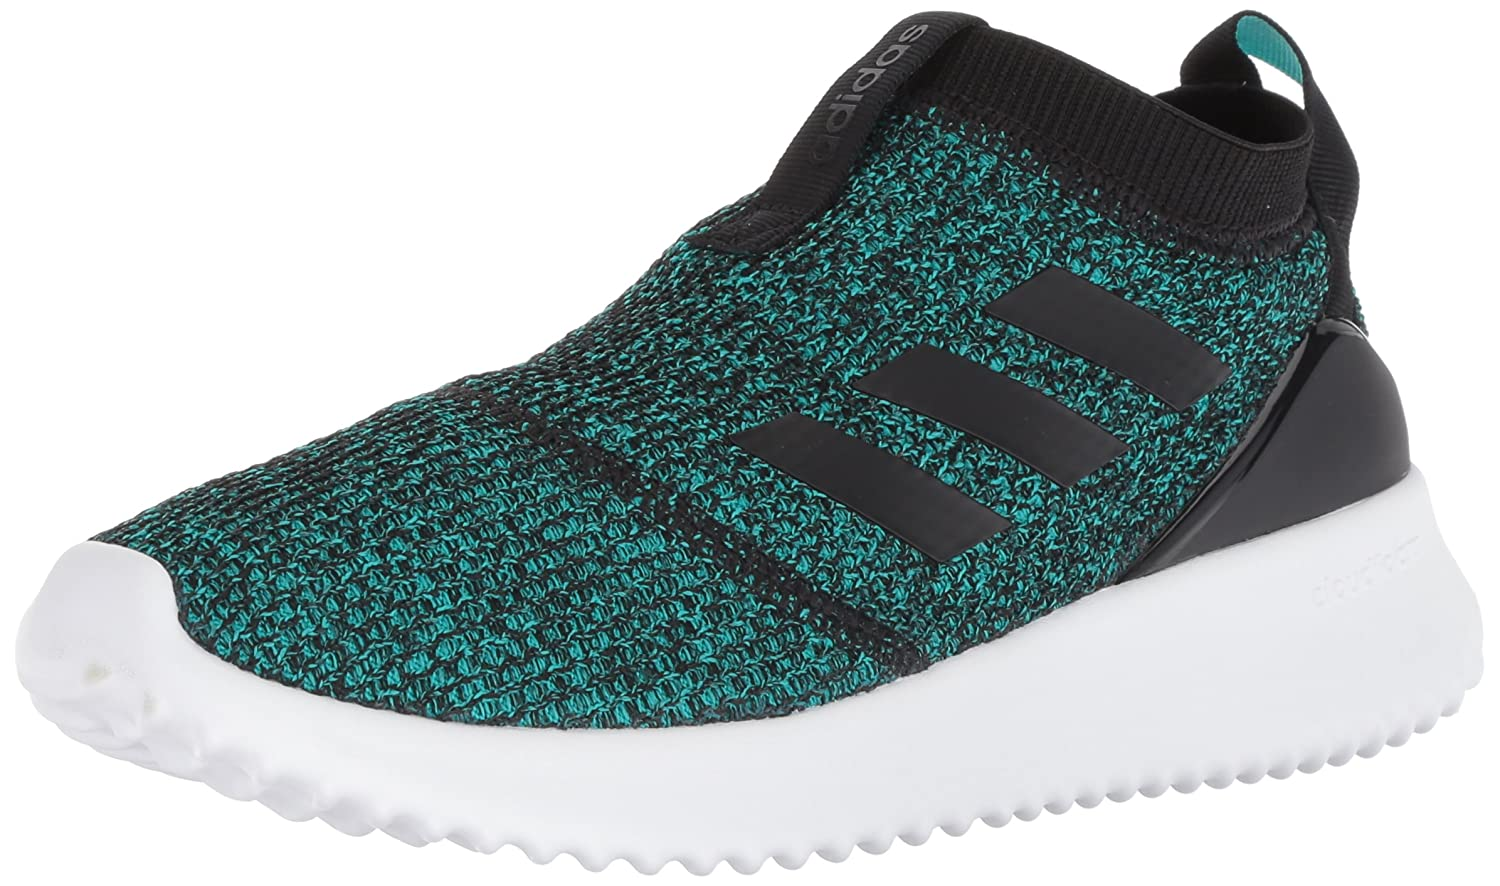 adidas Women's Ultimafusion Running Shoe Aqua/Black/Black B077XBZYKF 8.5 B(M) US|Hi-res Aqua/Black/Black Shoe bc62a5